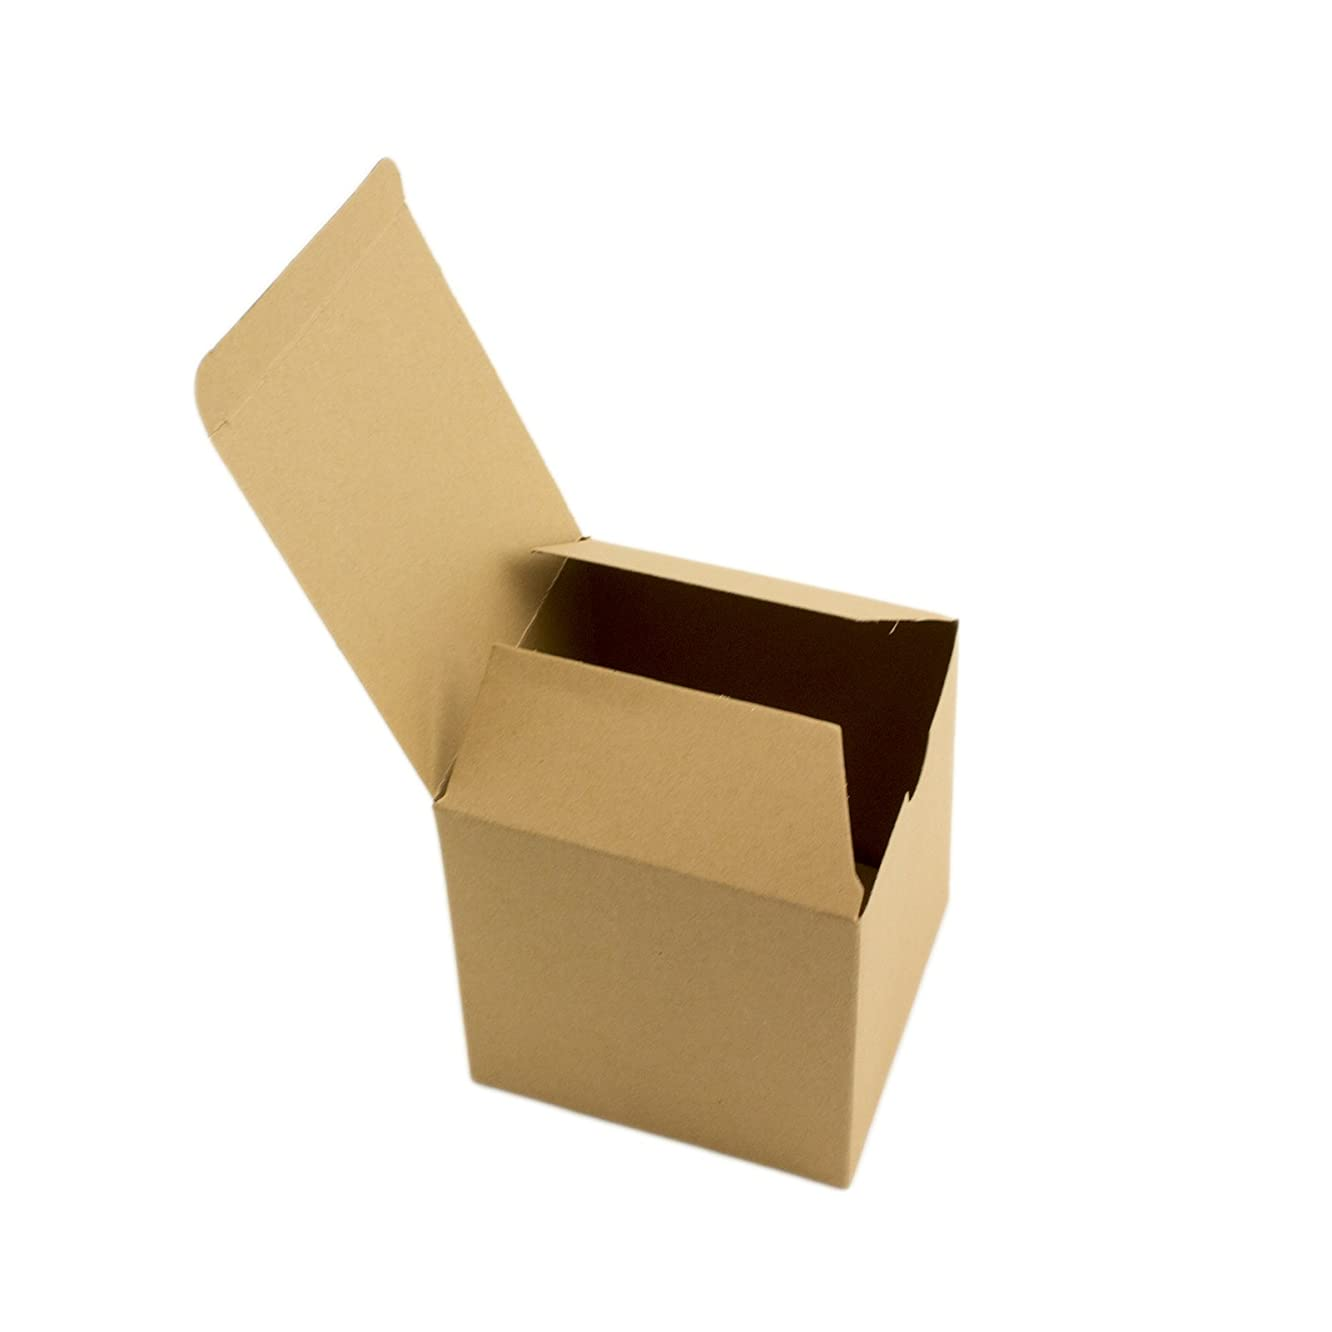 Adorox 50 Pack 3 x 3 x 3 Kraft Boxes Cardboard Gift Box with Lids for Wedding Birthday Holiday Baby Shower Favor (BROWN, 3 X 3 X 3)